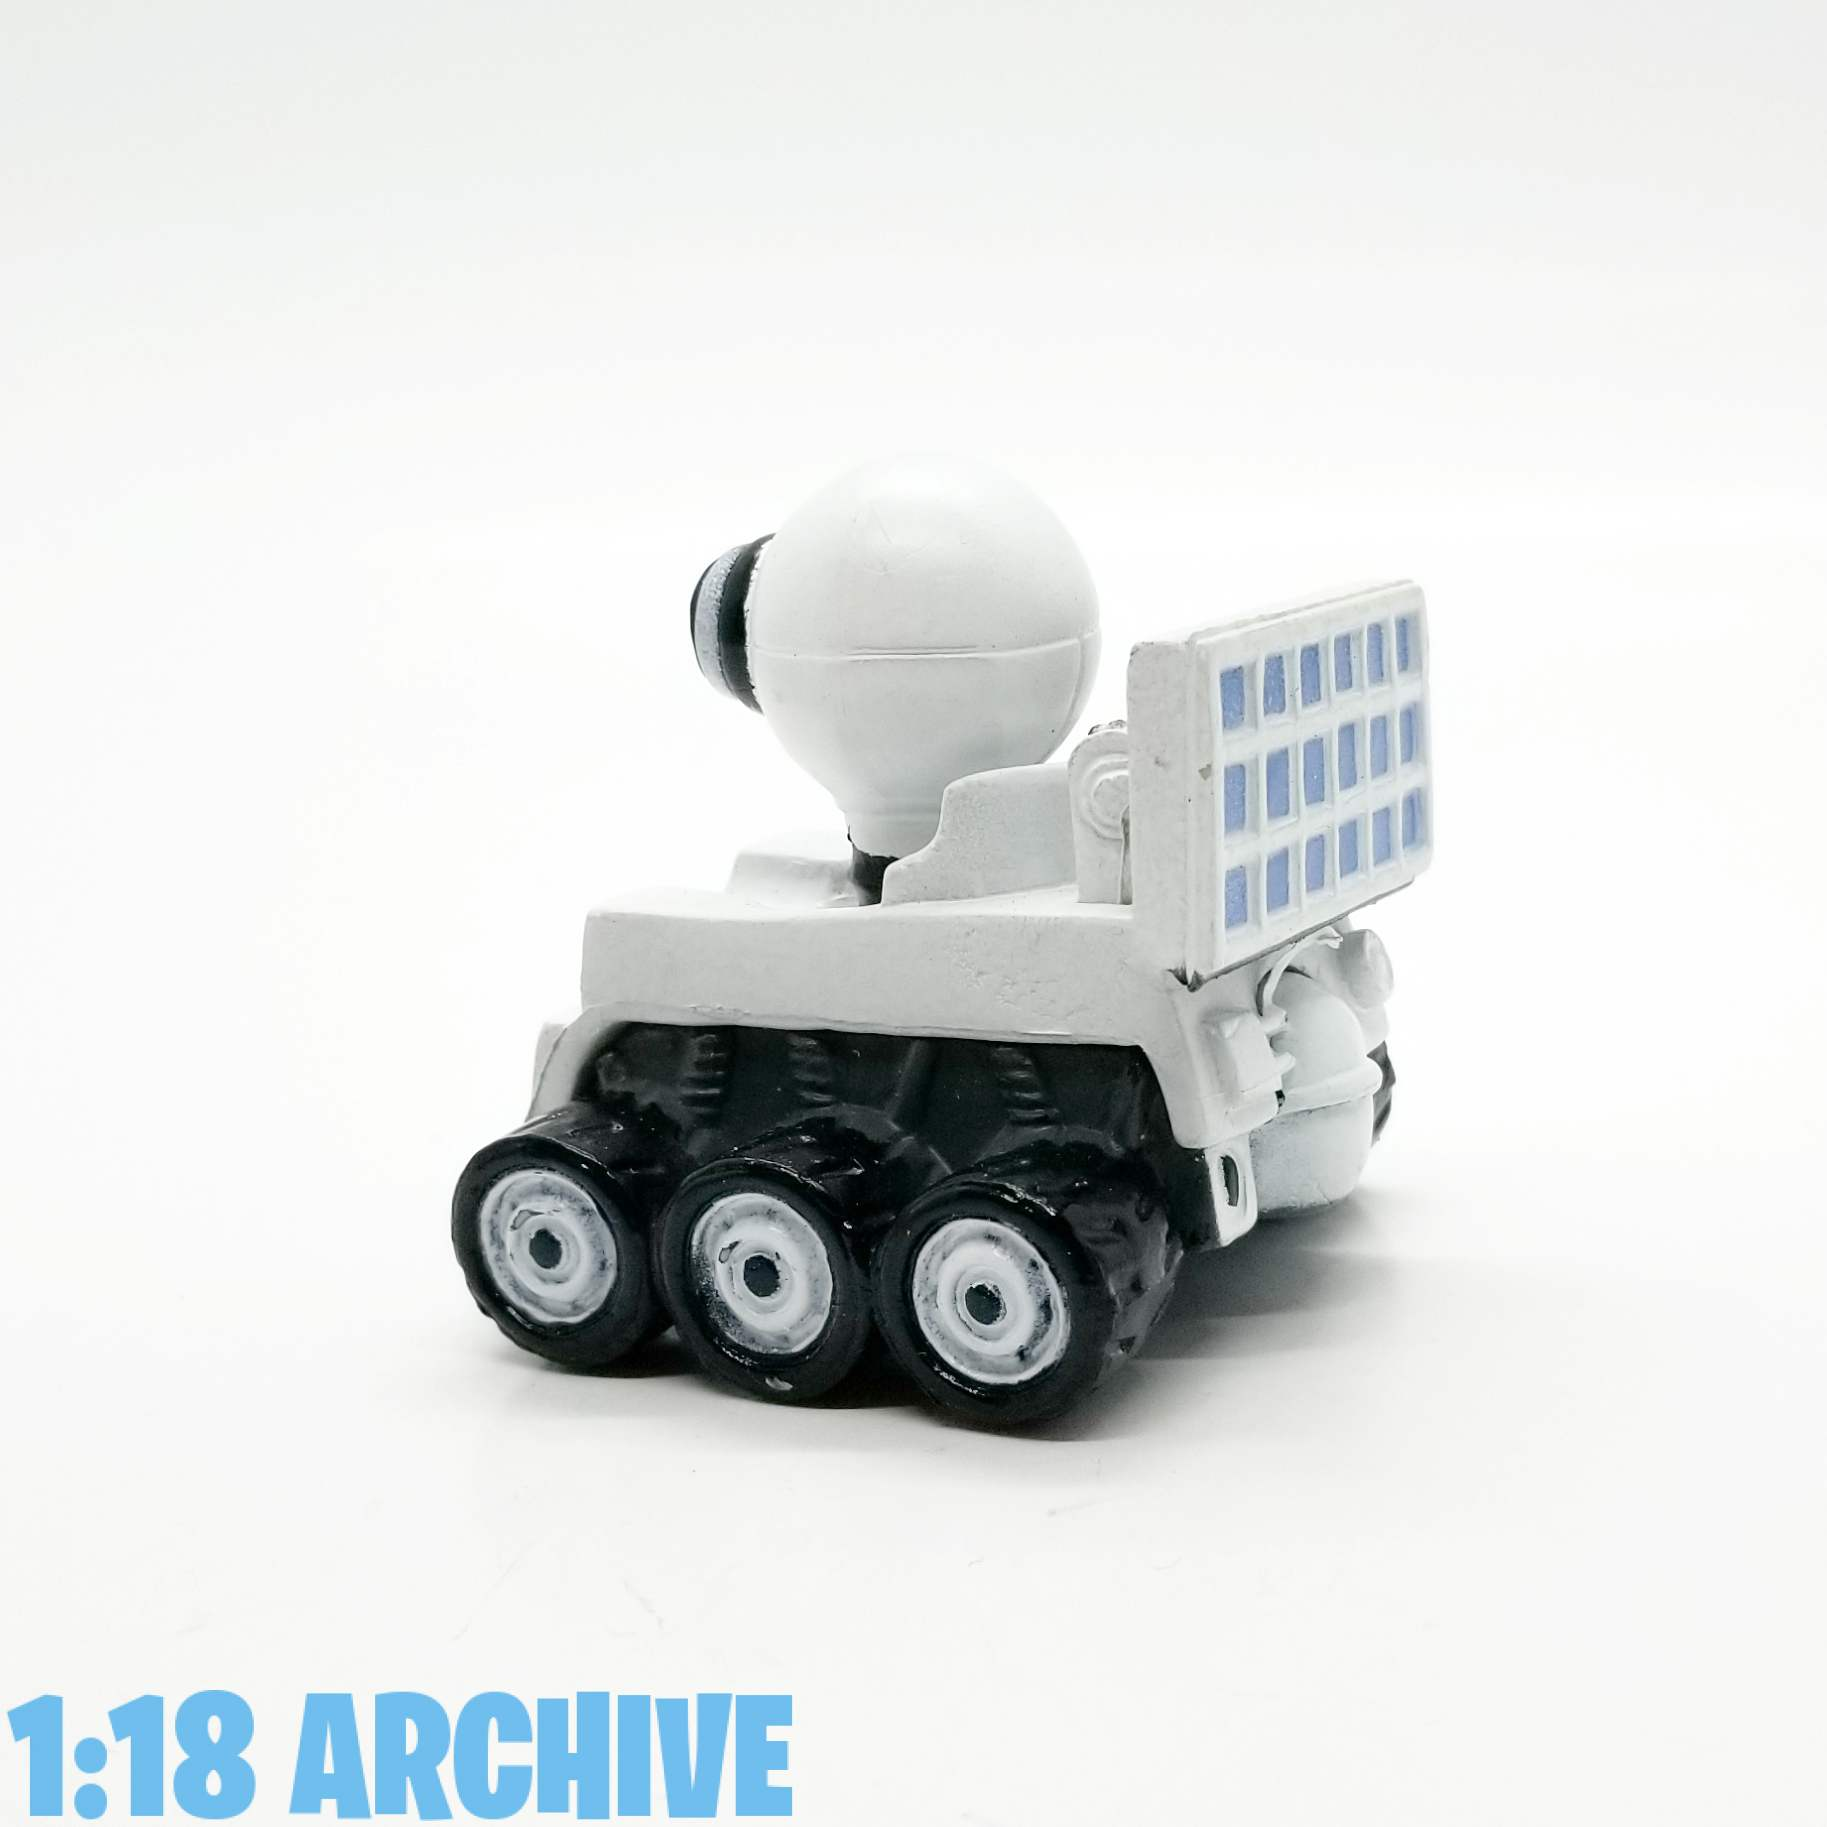 118_Action_Figure_Archive_Droid_Of_The_Day_Reviews_Checklist_Guide_Jazwares_Plant_51_Rover